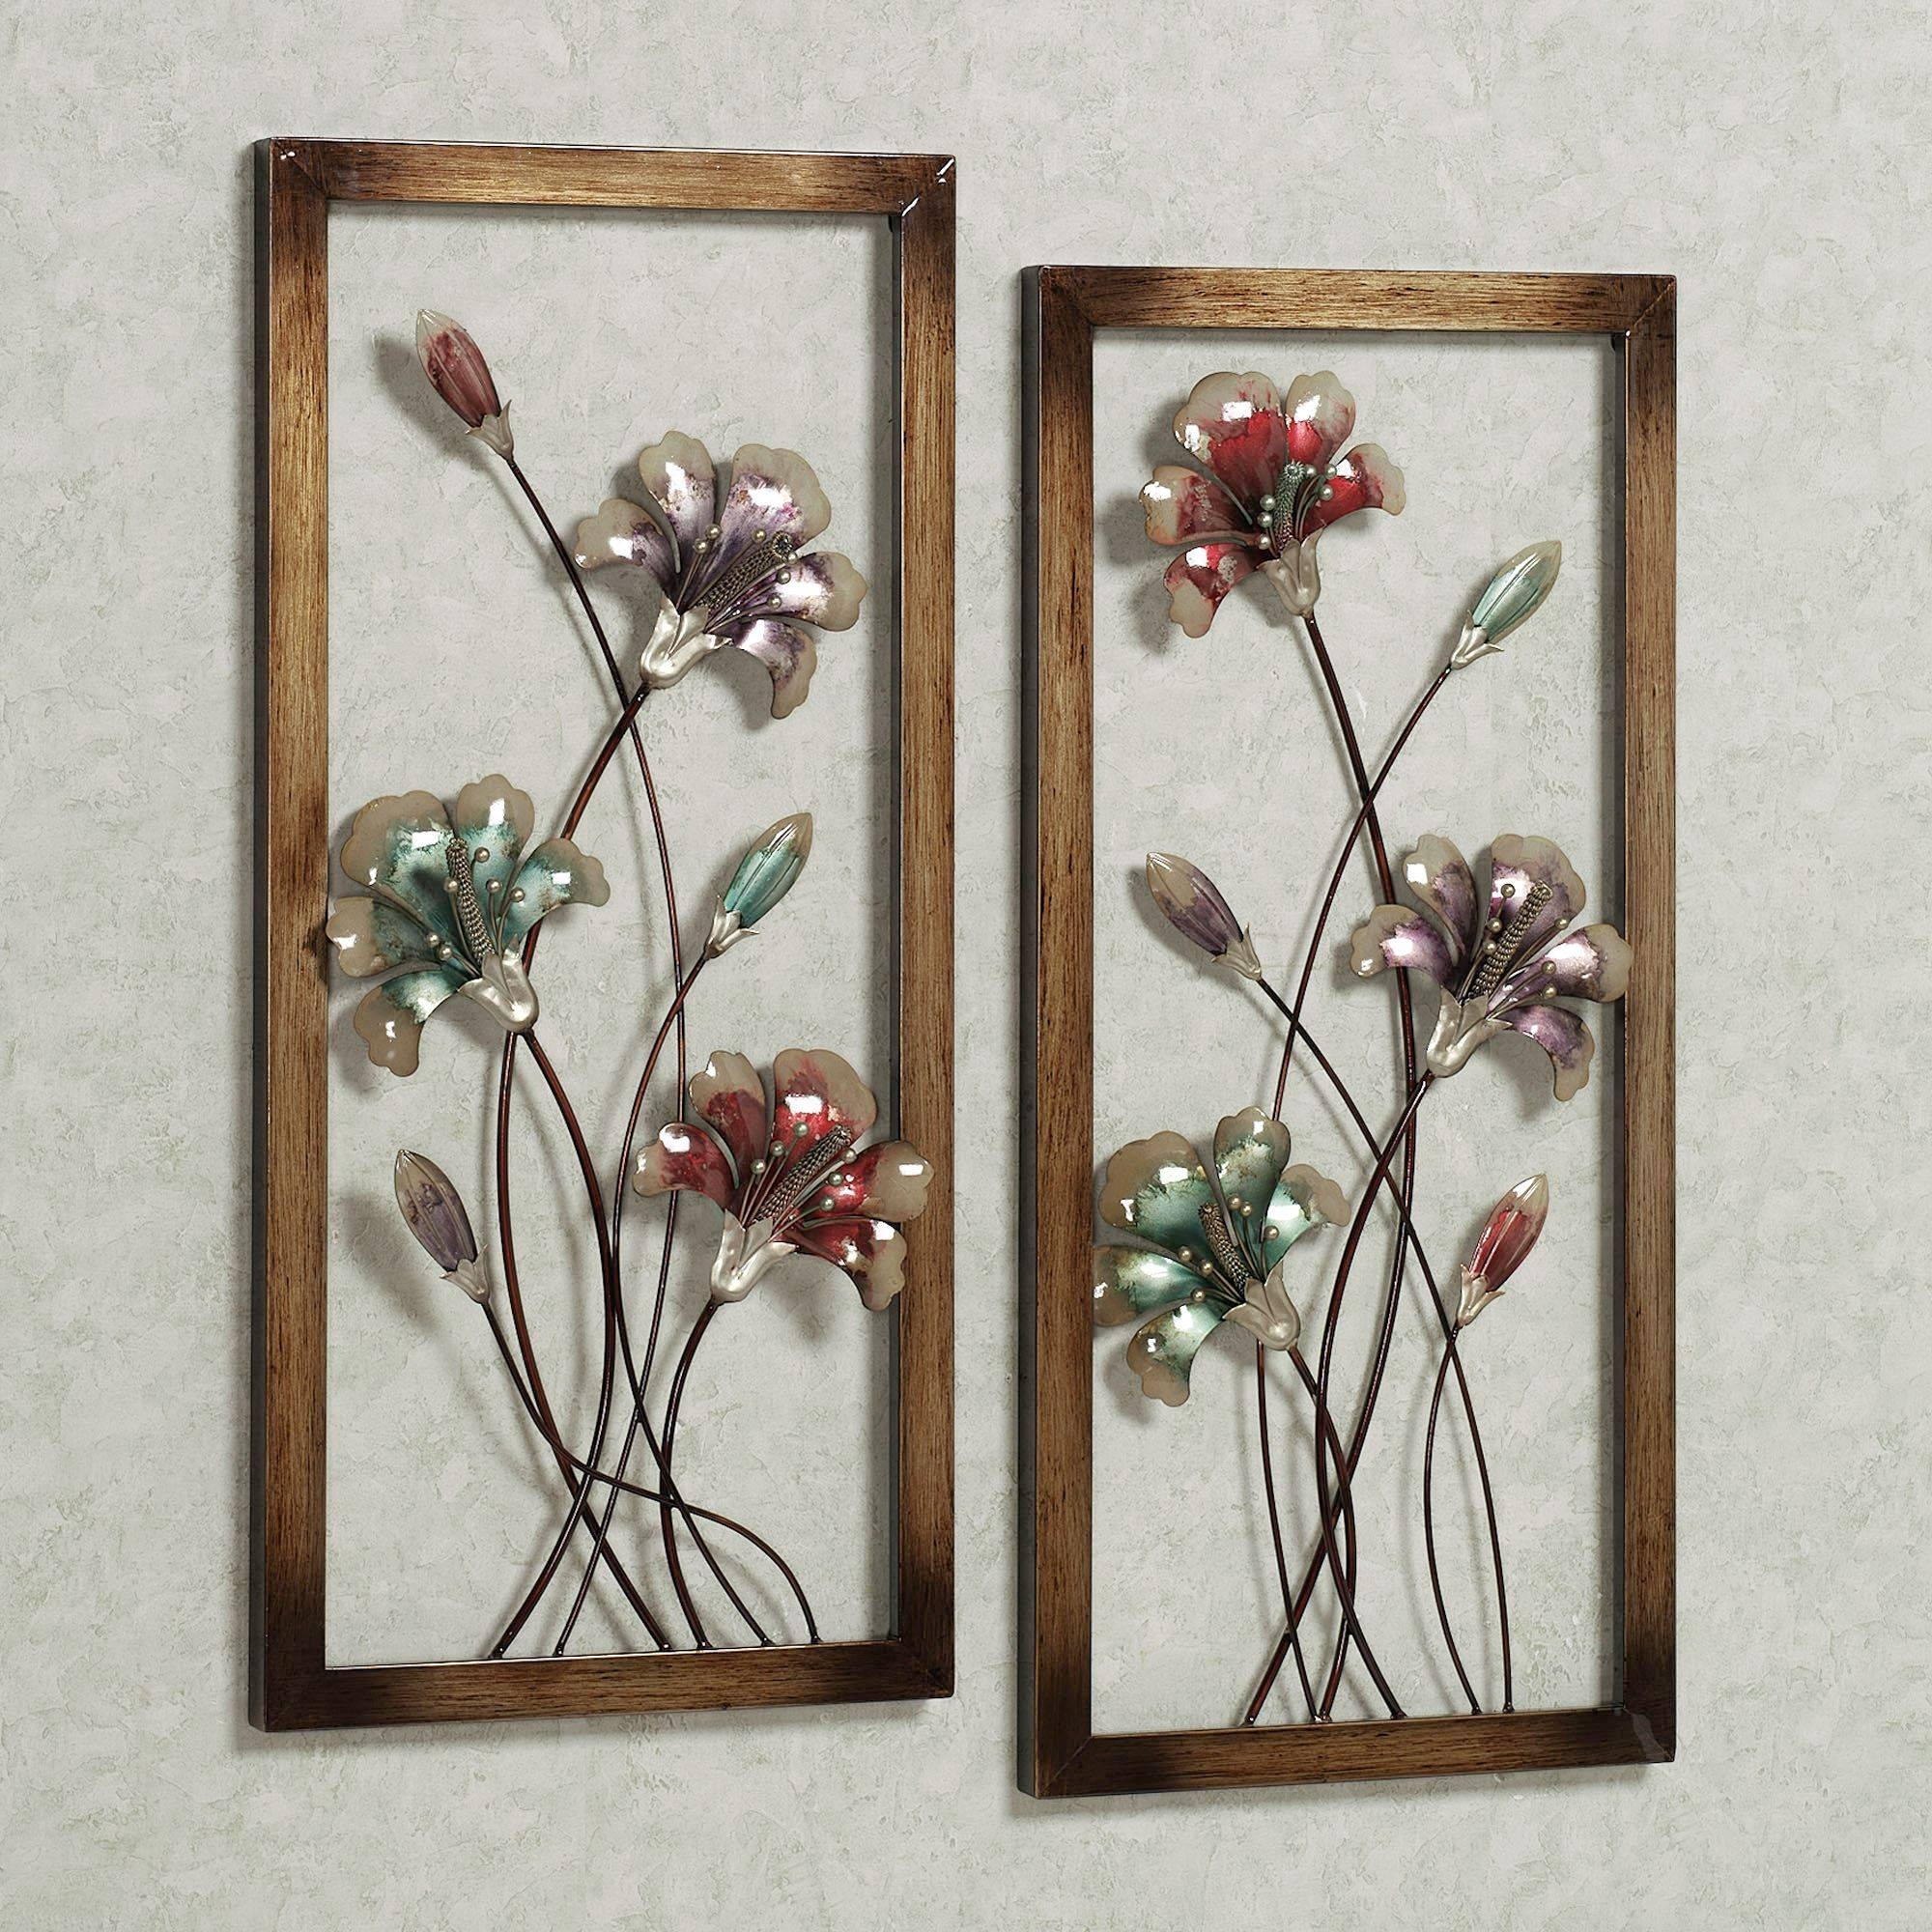 Garden Whispers Floral Metal Wall Art Panel Set For Most Up To Date Metal Wall Art For Gardens (View 6 of 20)